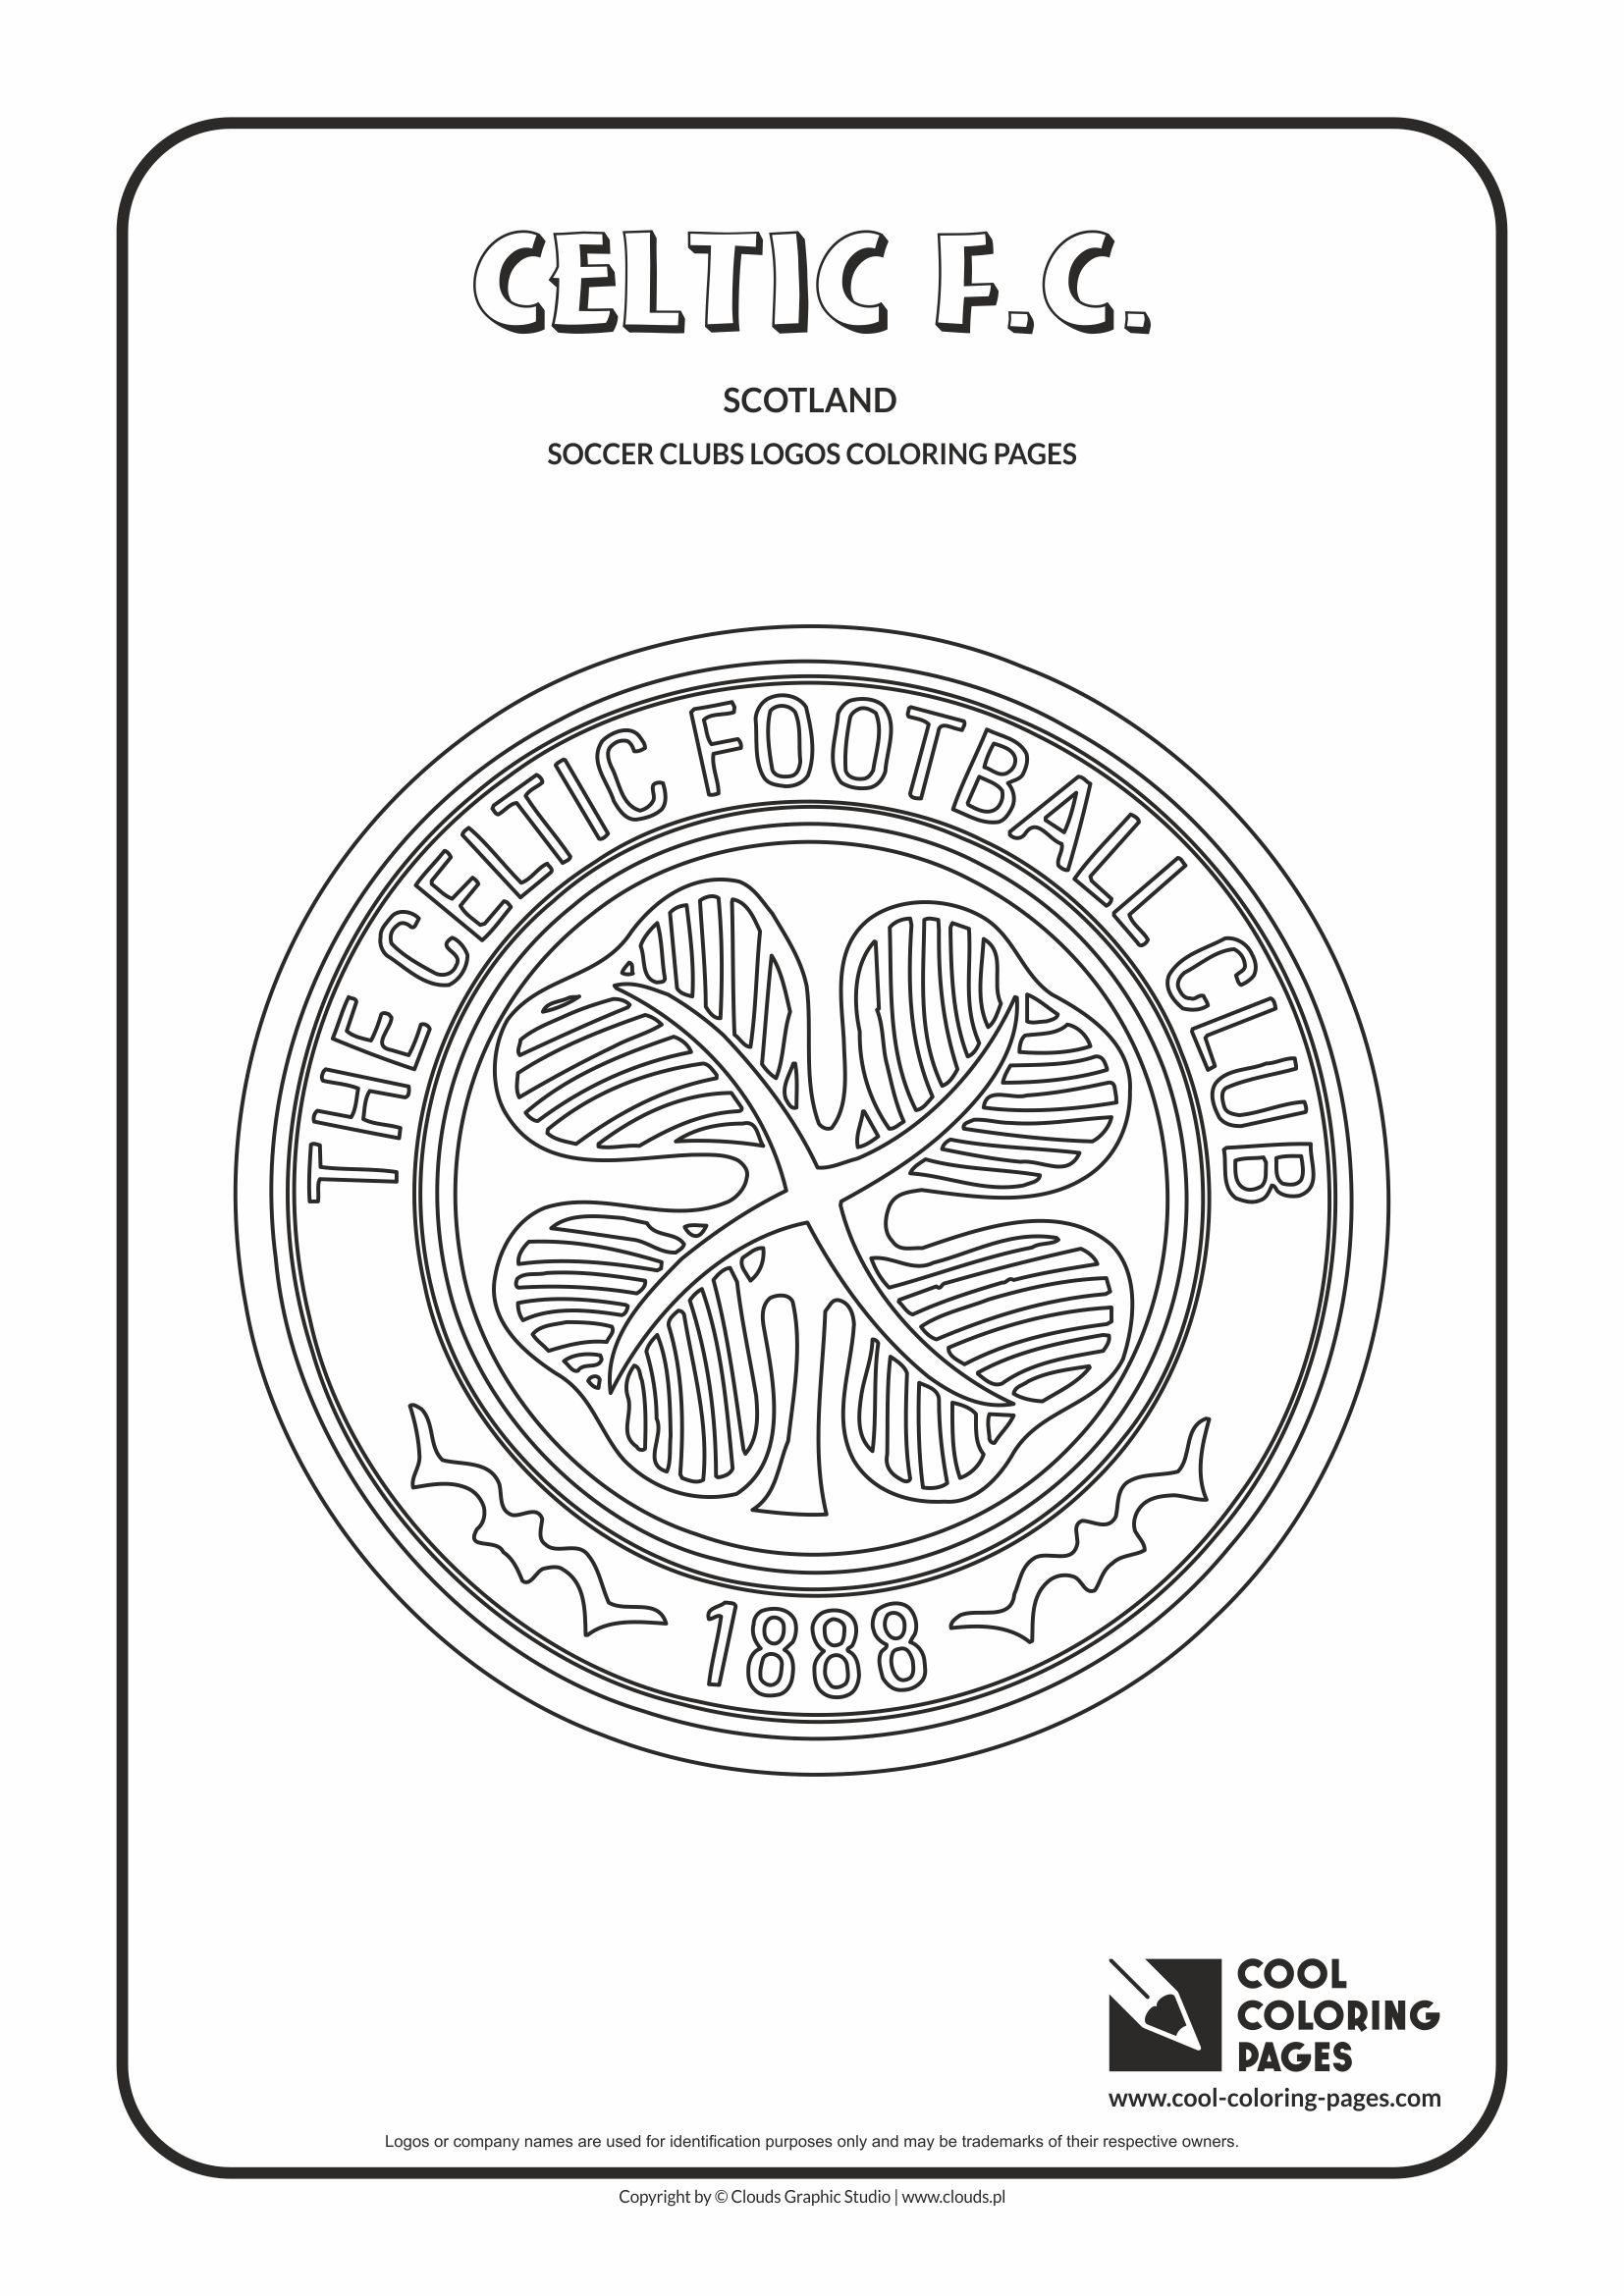 Cool Coloring Pages Celtic F.C. logo coloring page - Cool Coloring ...